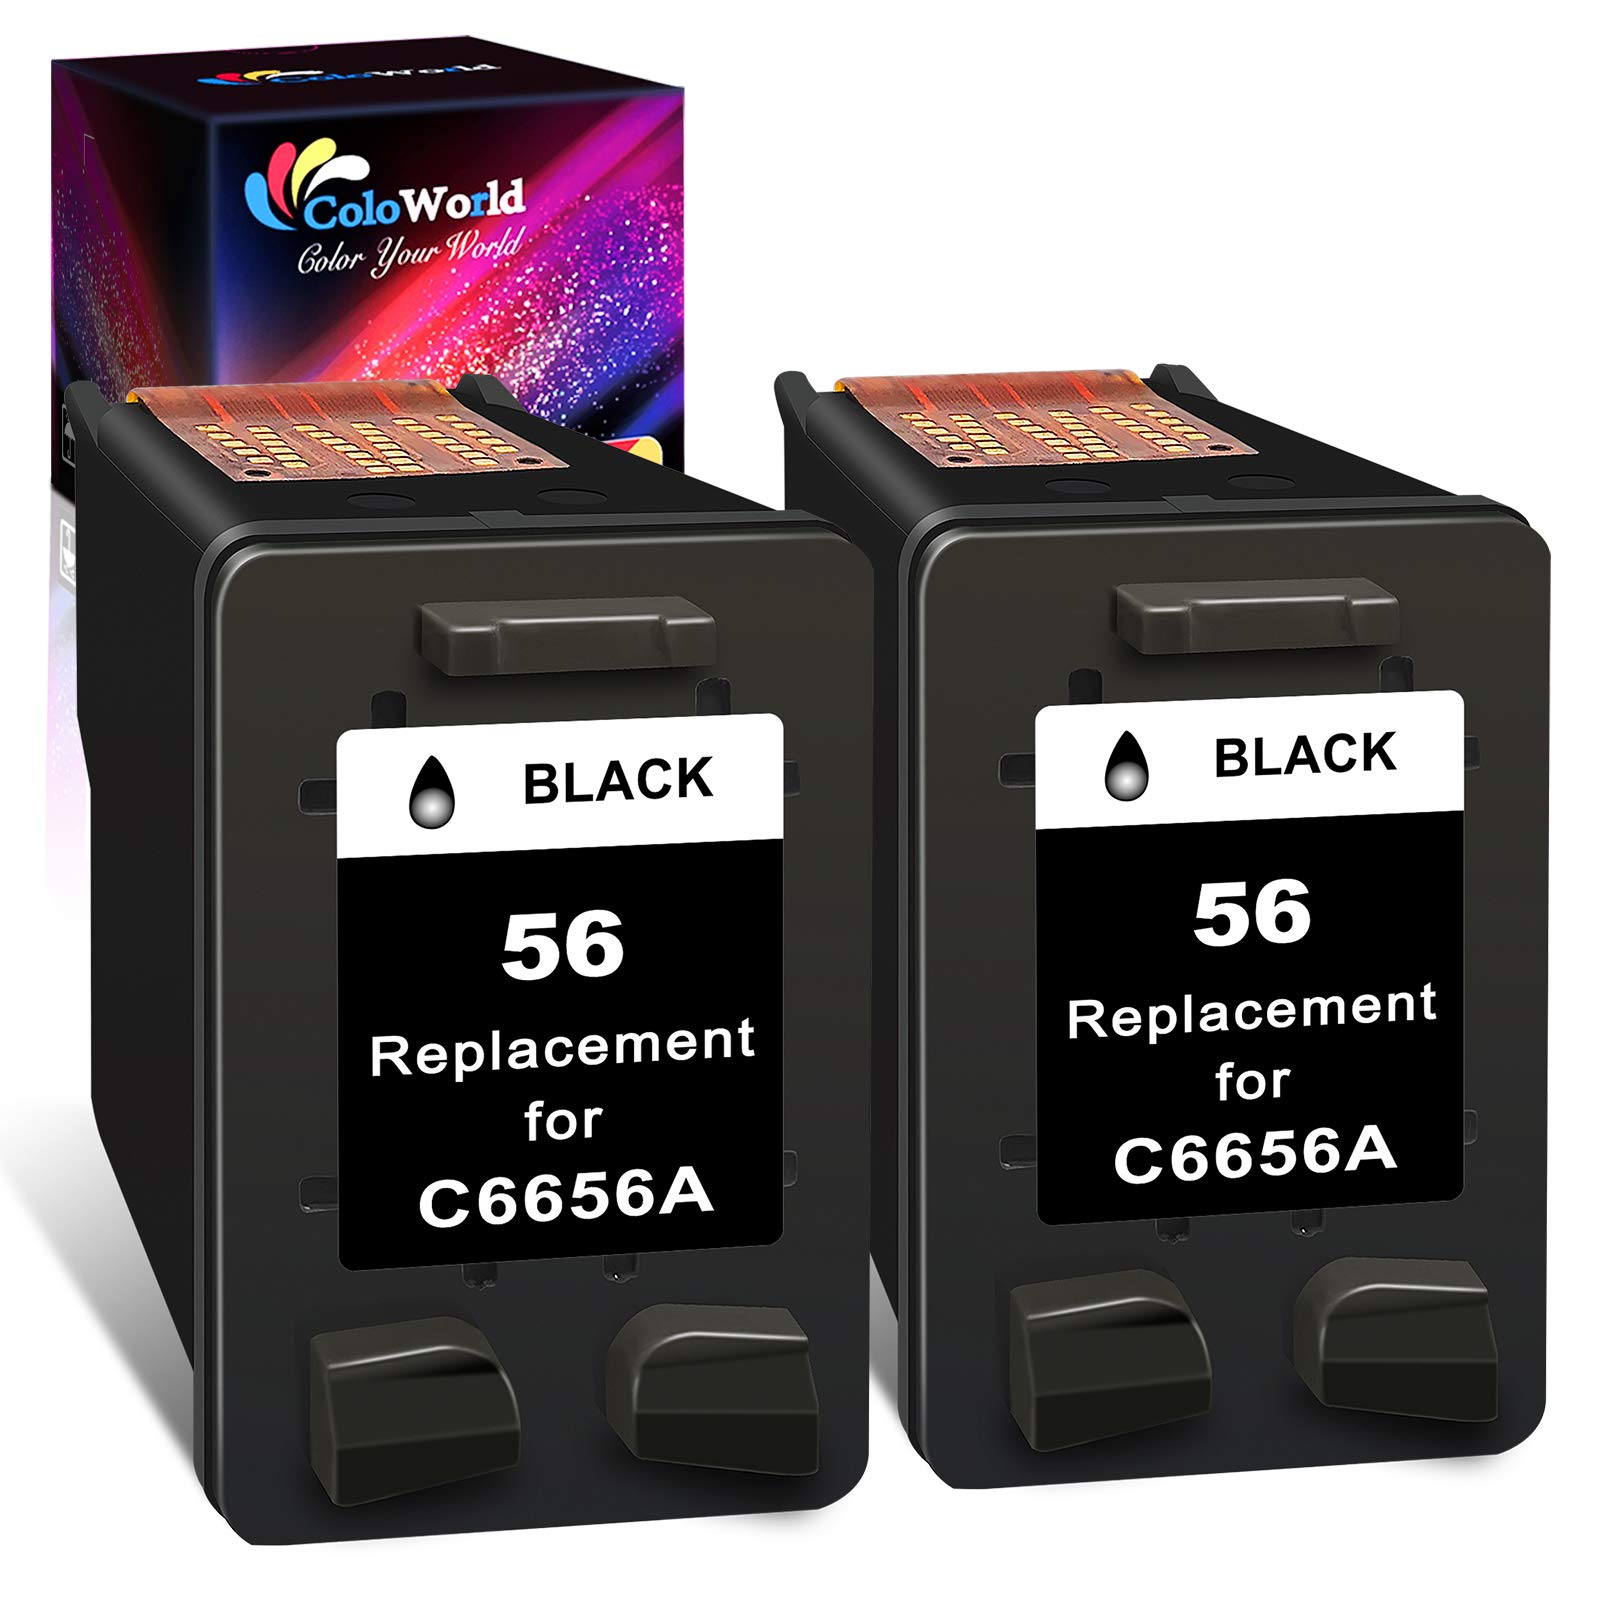 ColoWorld Remanufactured Ink Cartridges Replacement for HP 56XL 56 (2 Black) use with OfficeJet 5610 6110 5510 4215 PhotoSmart 7660 7760 7960 DeskJet 5550 5650 450 PSC 1315 2210 Printer